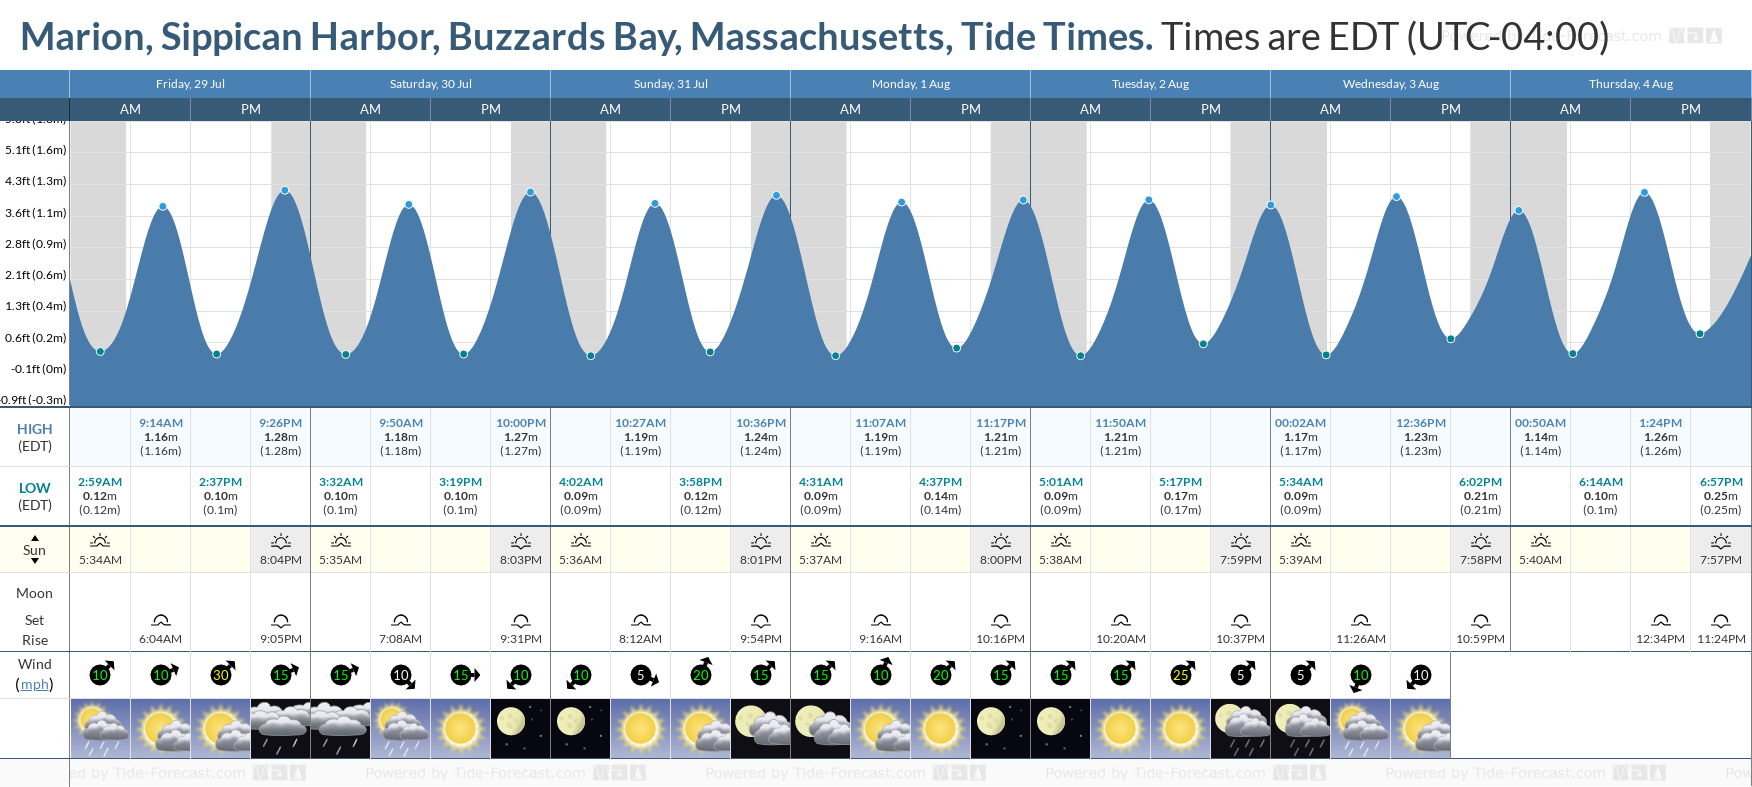 Marion, Sippican Harbor, Buzzards Bay, Massachusetts Tide Chart including high and low tide tide times for the next 7 days